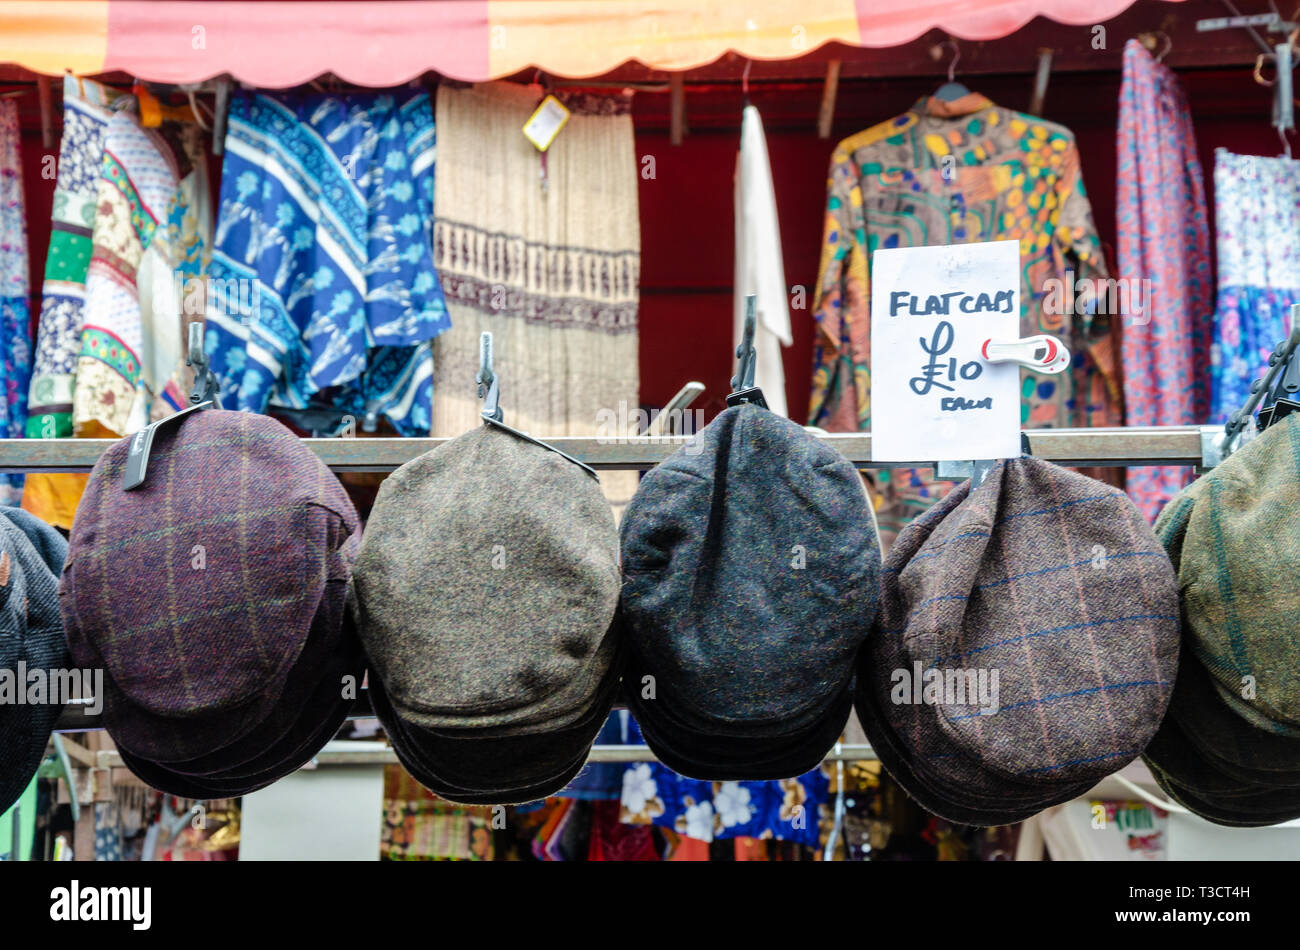 flat-caps-on-sale-at-a-market-stall-in-portobello-road-market-in-london-uk-T3CT4H.jpg